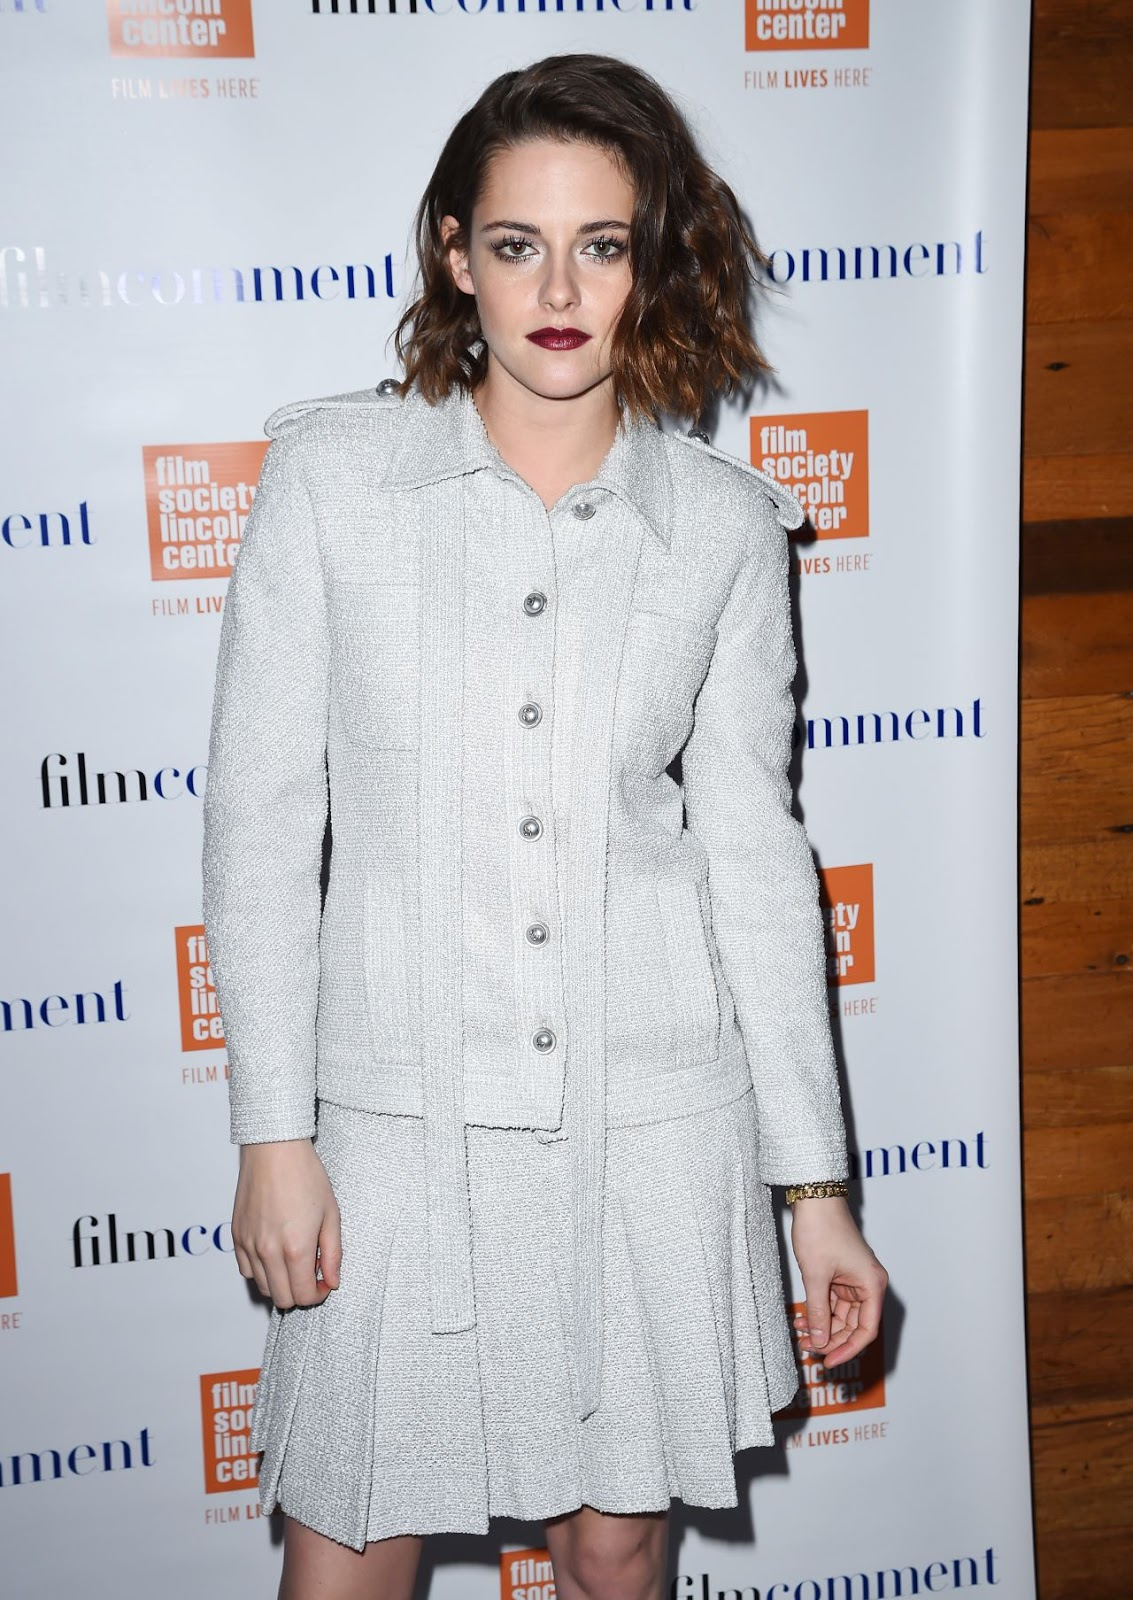 Kristen Stewart 2016 Film Society Of Lincoln Center Luncheon - Photo Kristen Stewart 2016